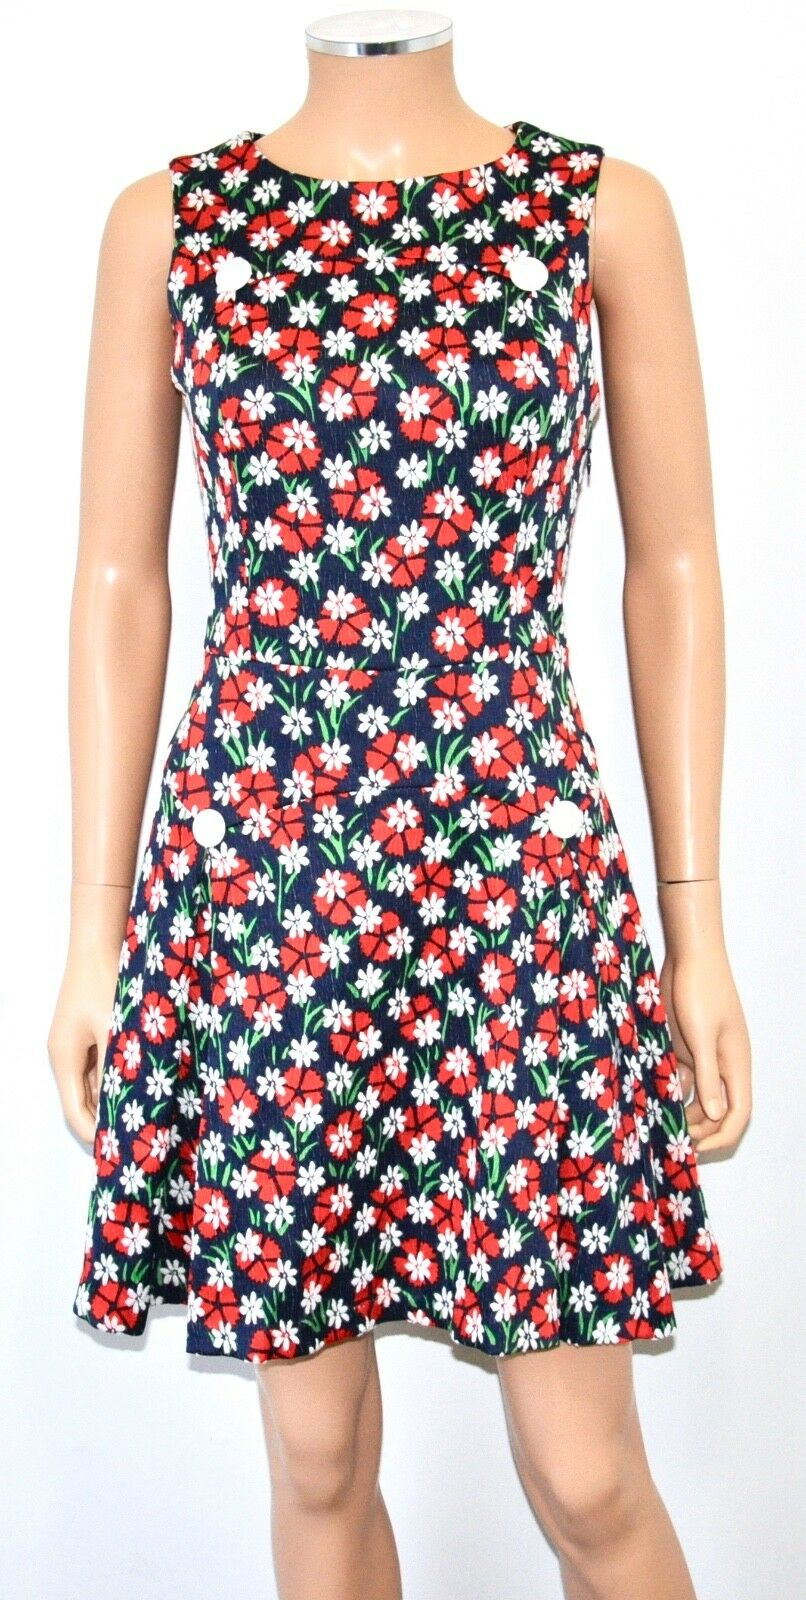 ALICE'S PIG MODCLOTH Navy Red White Daisy Vintage Retro Mod Shift Dress - Sz 4